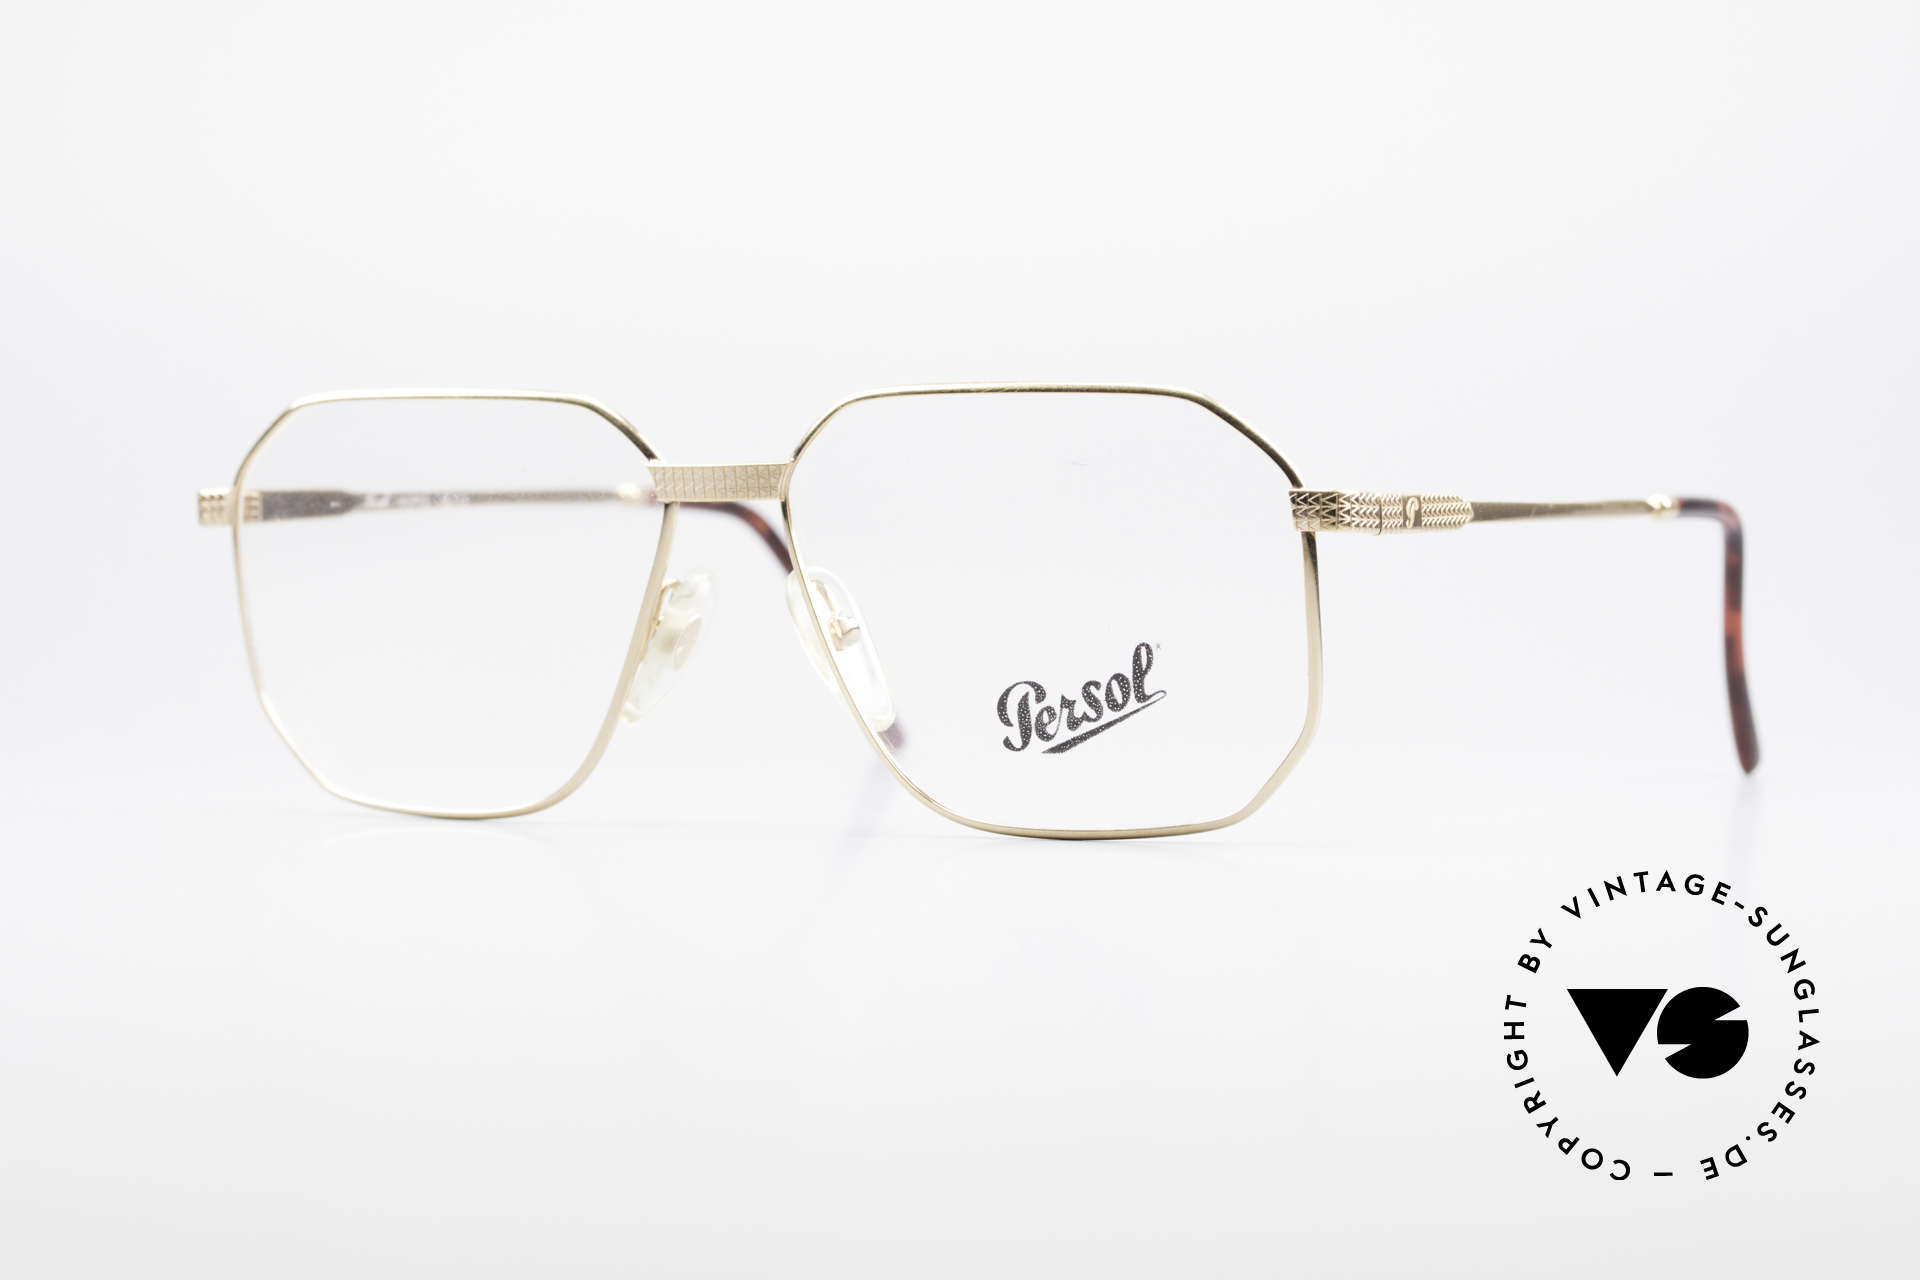 Persol Morris 90's Vintage Eyeglass Frame, vintage Persol men's glasses from the 90'S, Made for Men